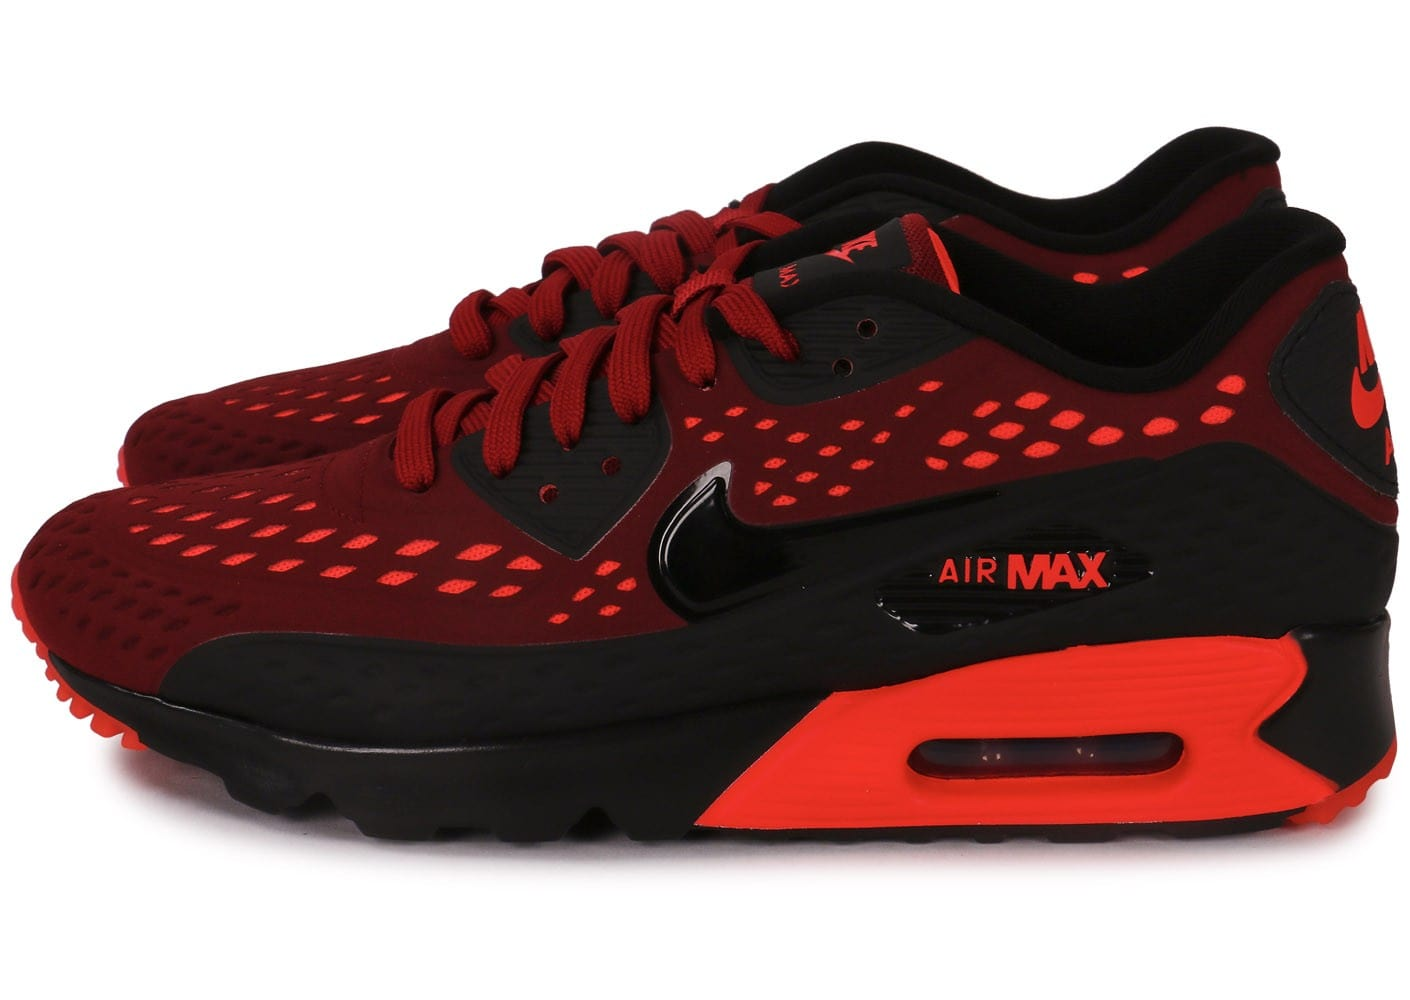 Nike Air Max 90 ultra Breathe rouge et noir Chaussures